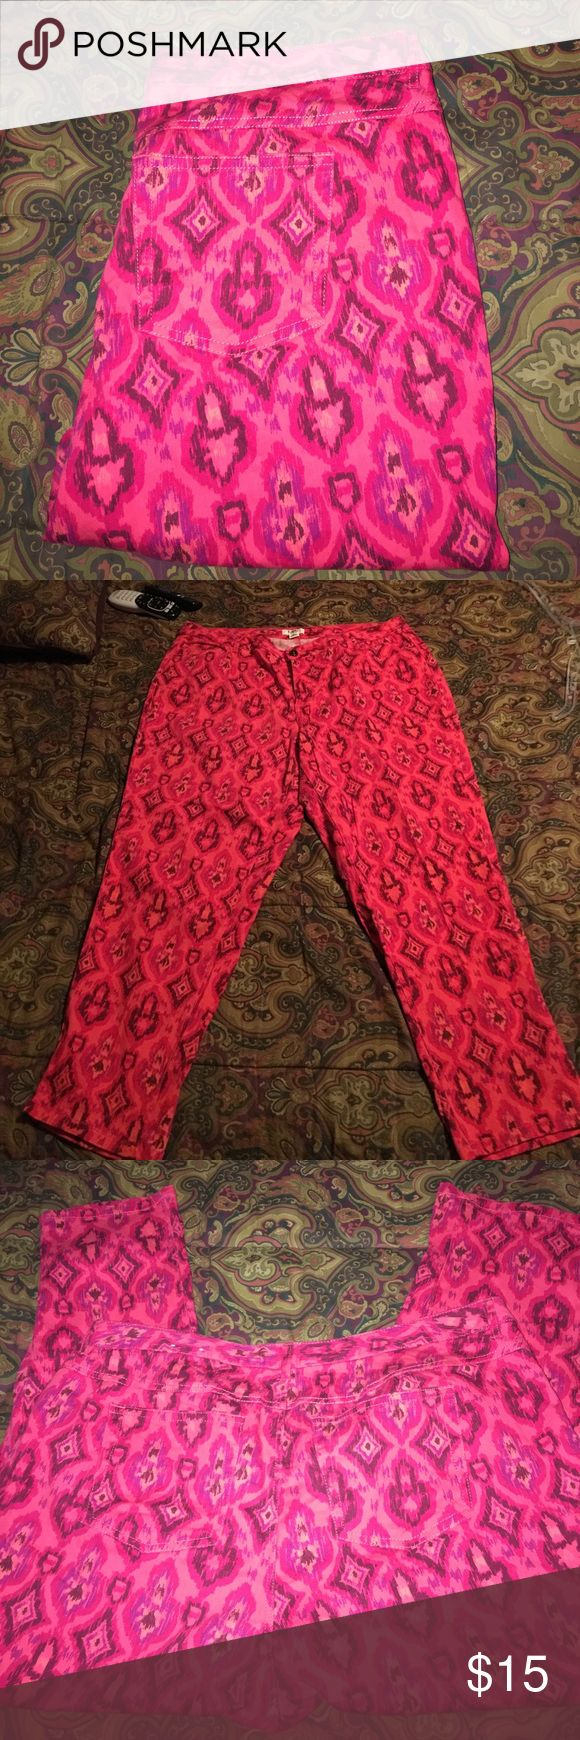 "Lightweight Stretch Ankle Pants By Cato 18W These pants are so comfortable and very unique. The flash on my camera makes them look pink but they are orange and have an Aztec look to them. They measure 18"" side to side at top of waist and inseam is 25"". Rise is 12"". They are in great condition. No rips stains or tears Cato Pants Ankle & Cropped"